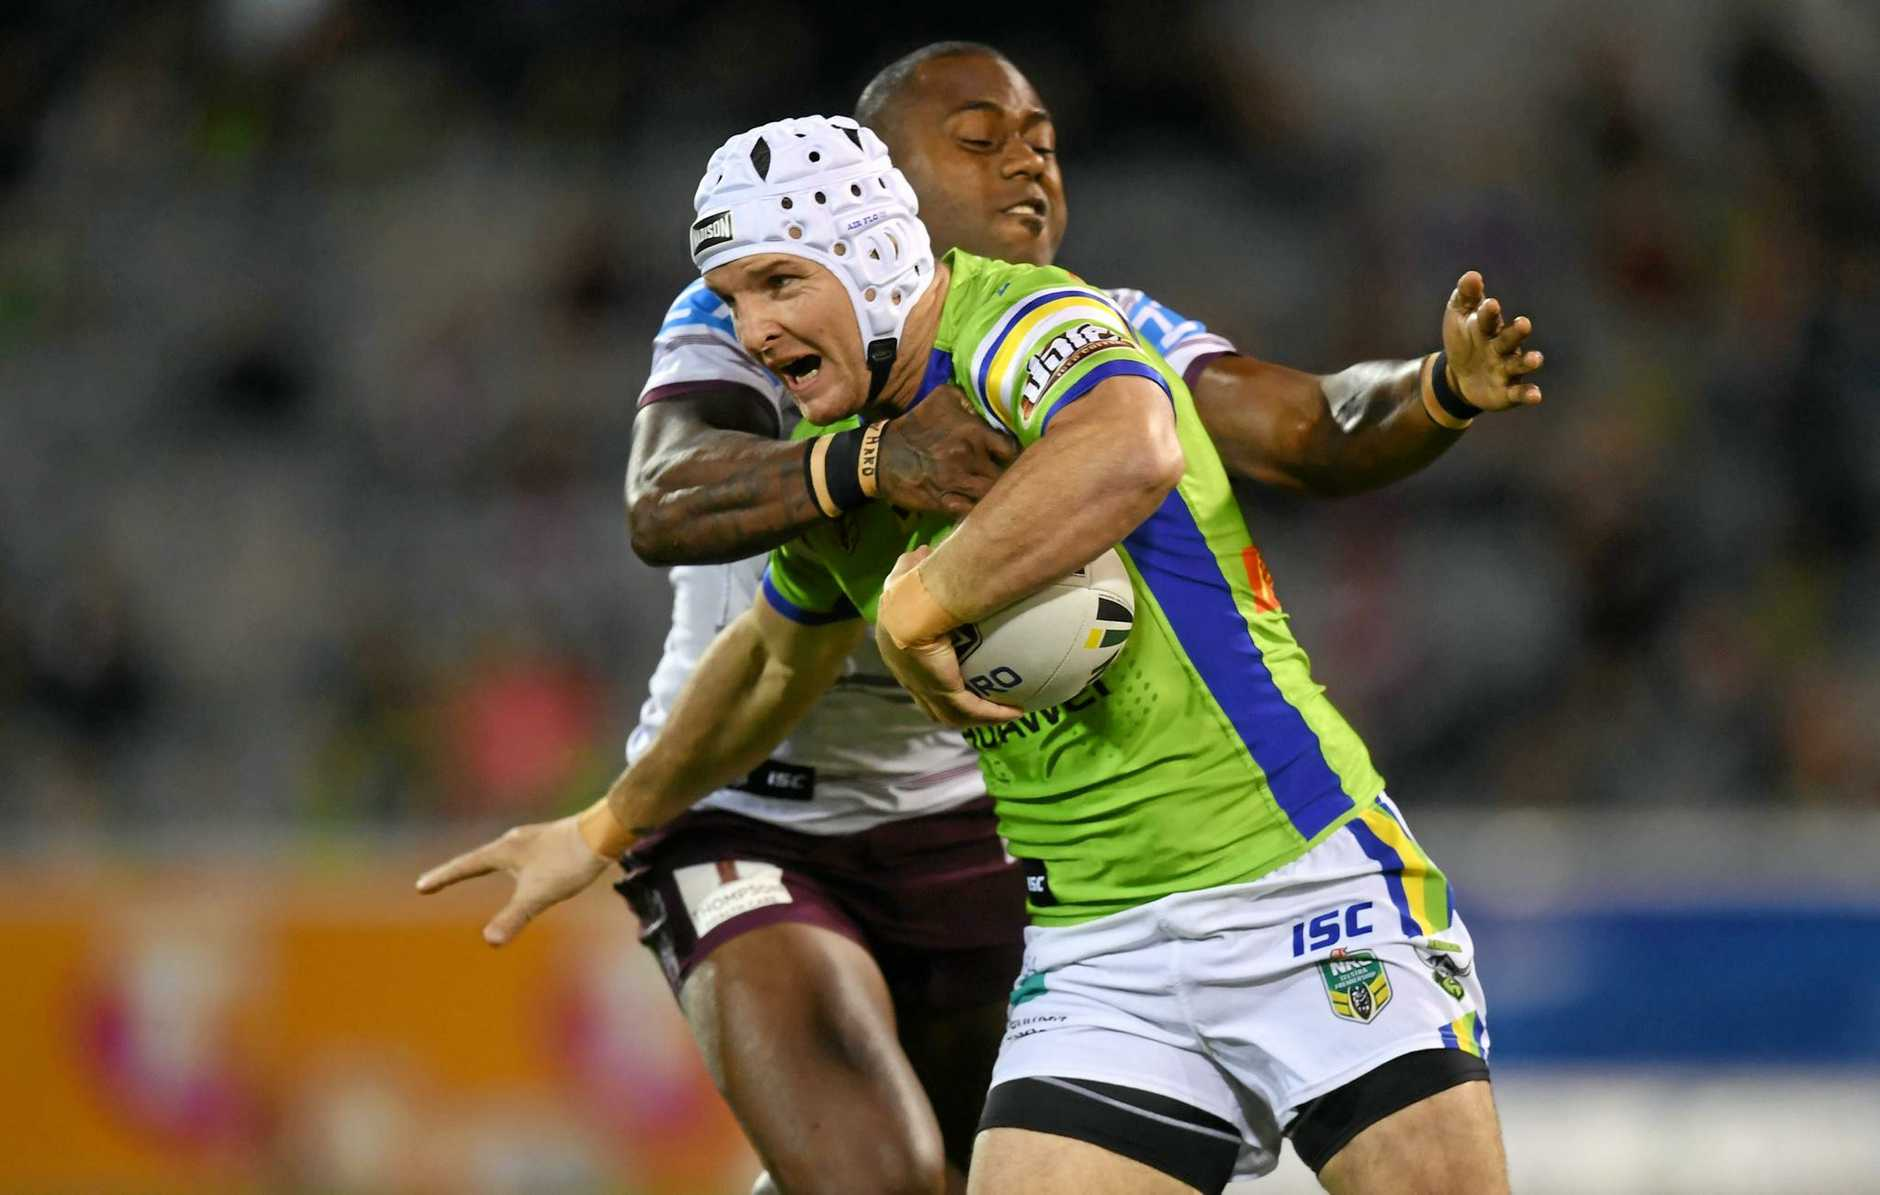 Jarrod Croker of the Raiders is tackled by Akuila Uate of the Sea Eagles.